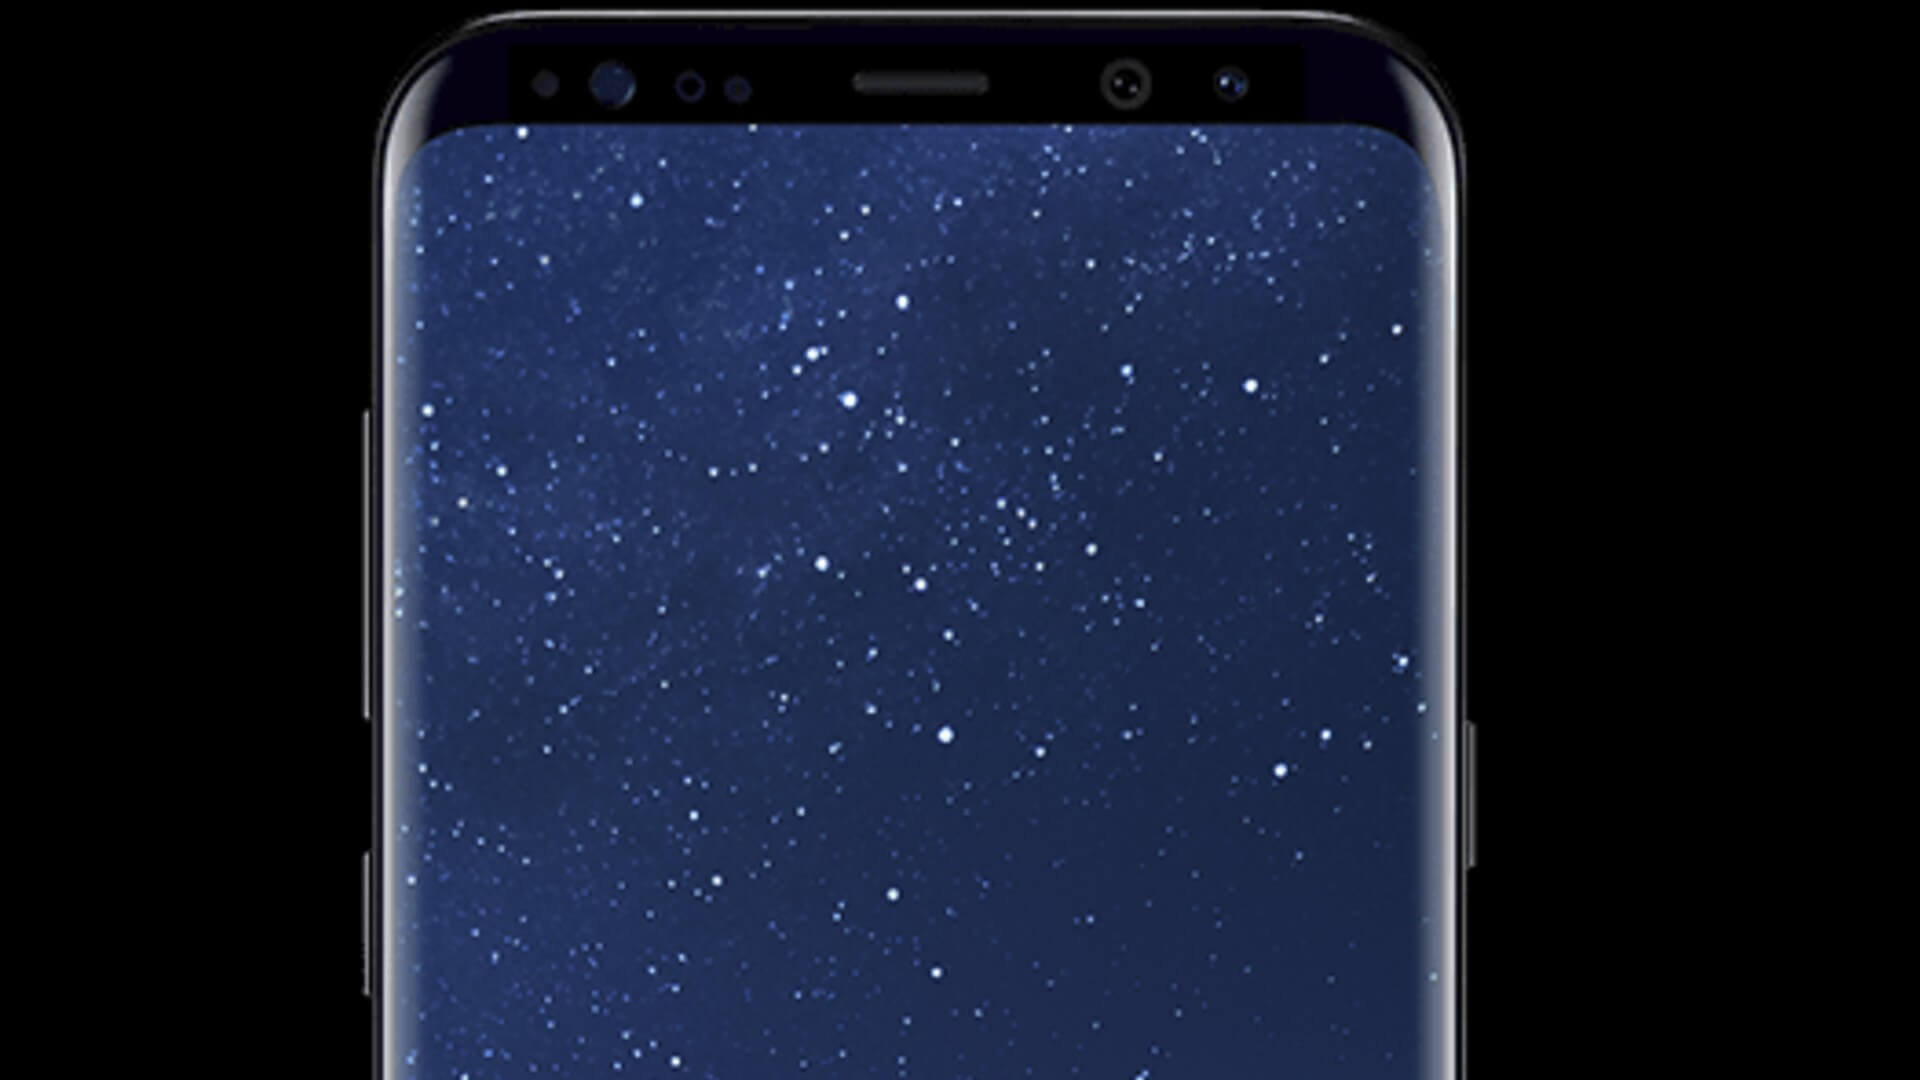 HOW TO RESET SAMSUNG S8